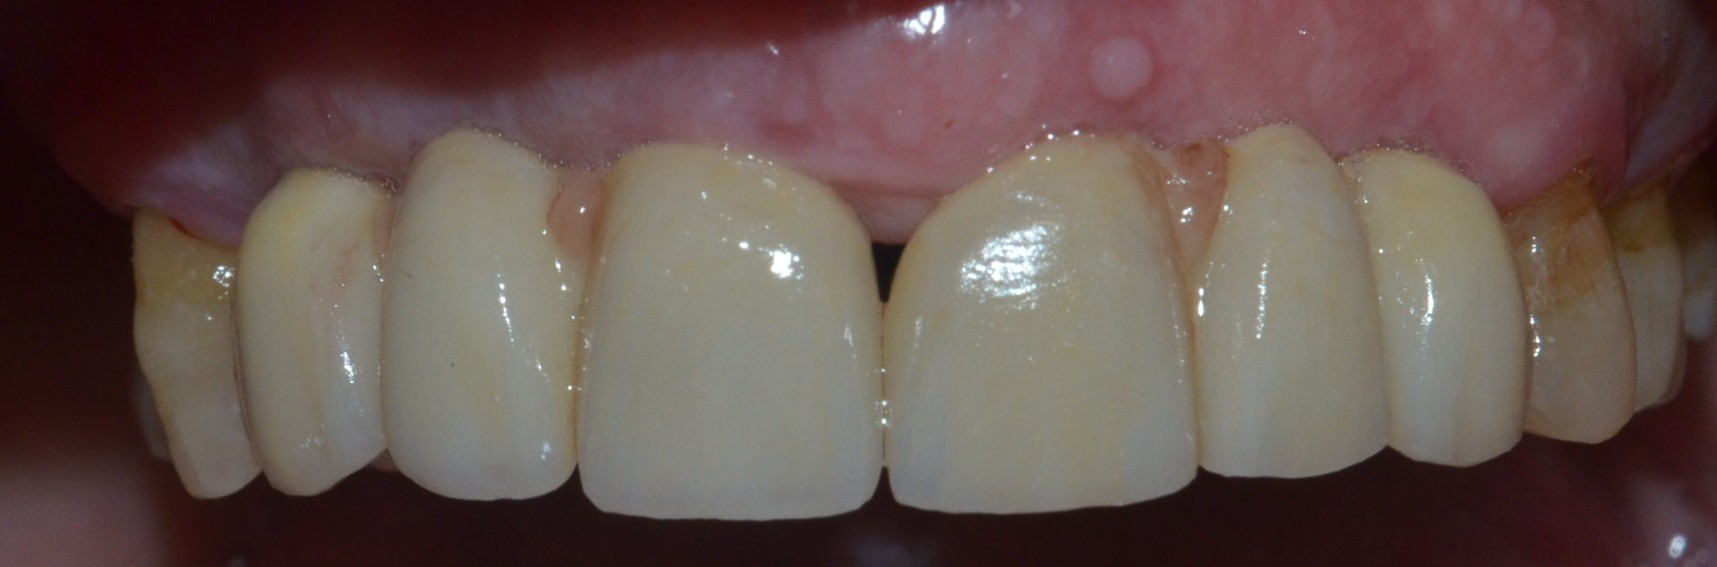 Crowns on dental implants